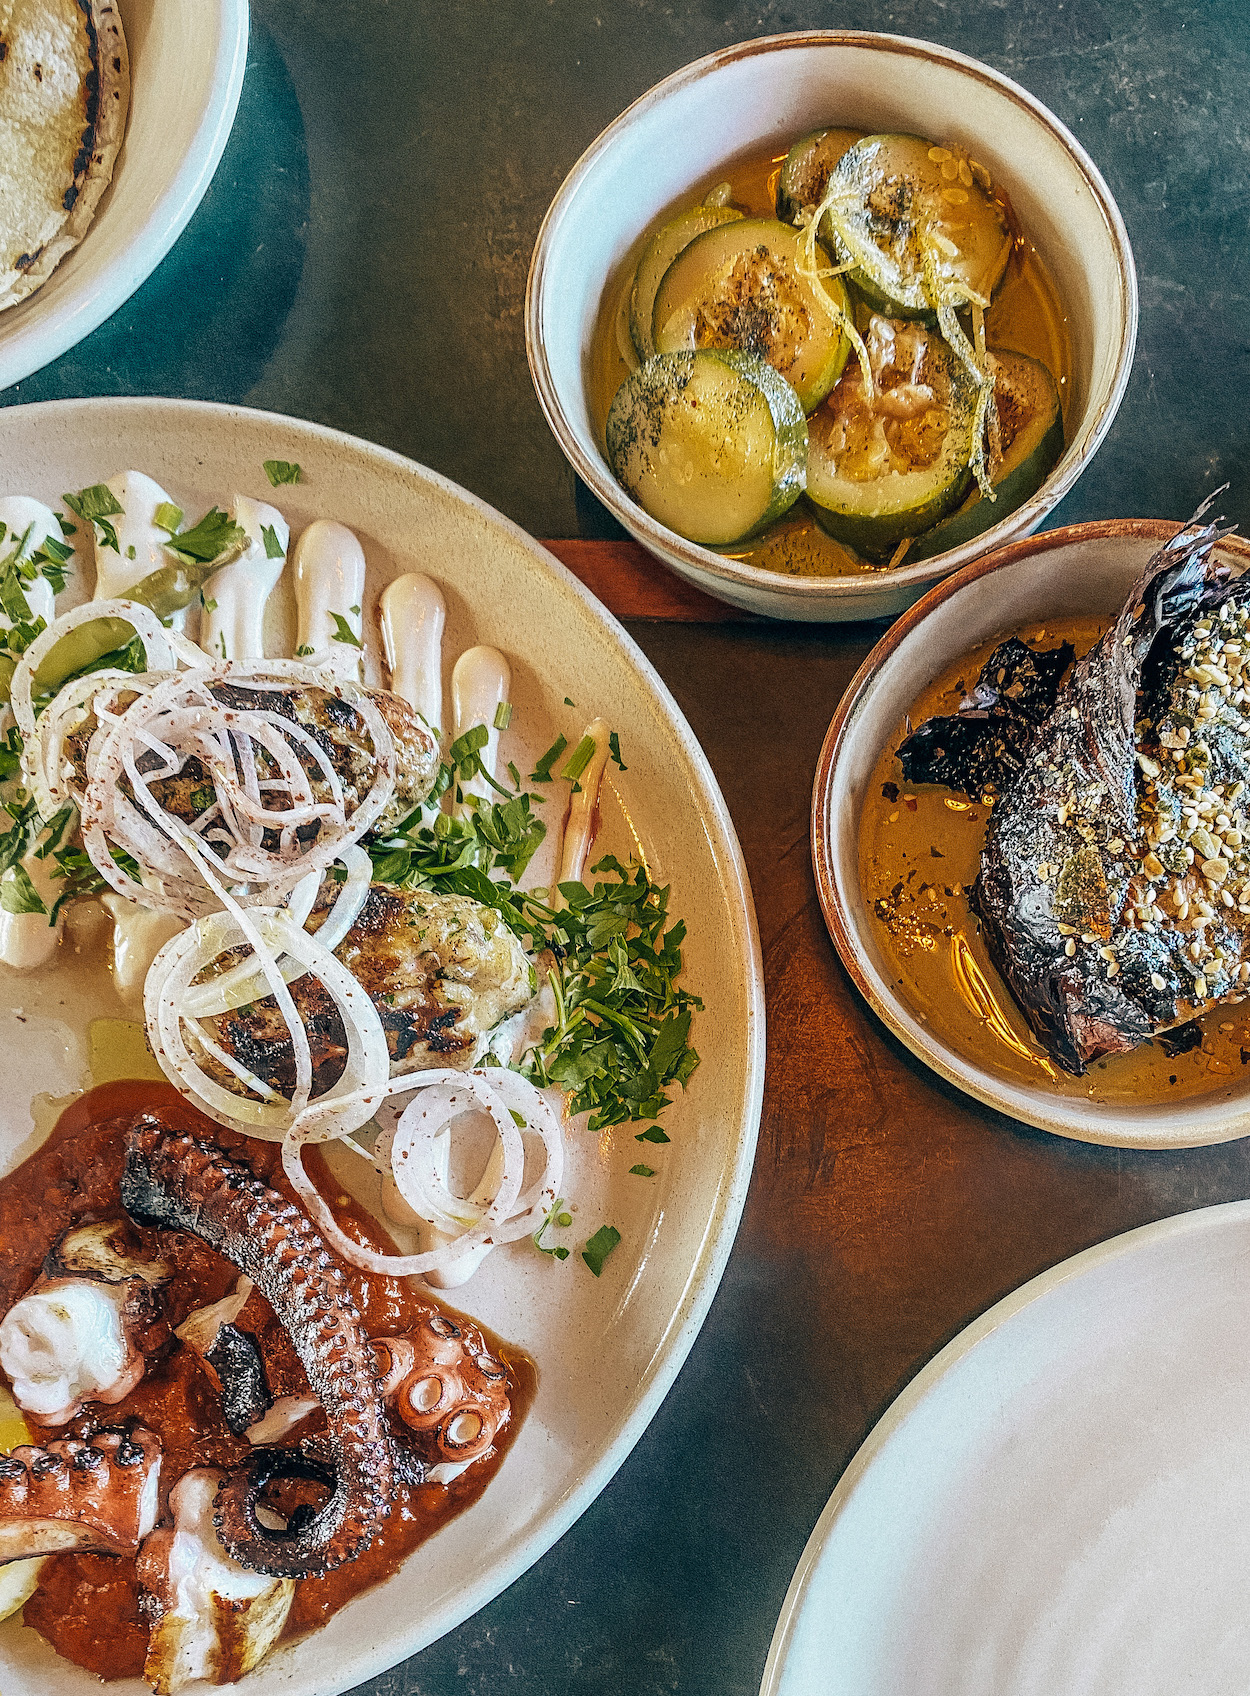 Places to eat in Byron Bay